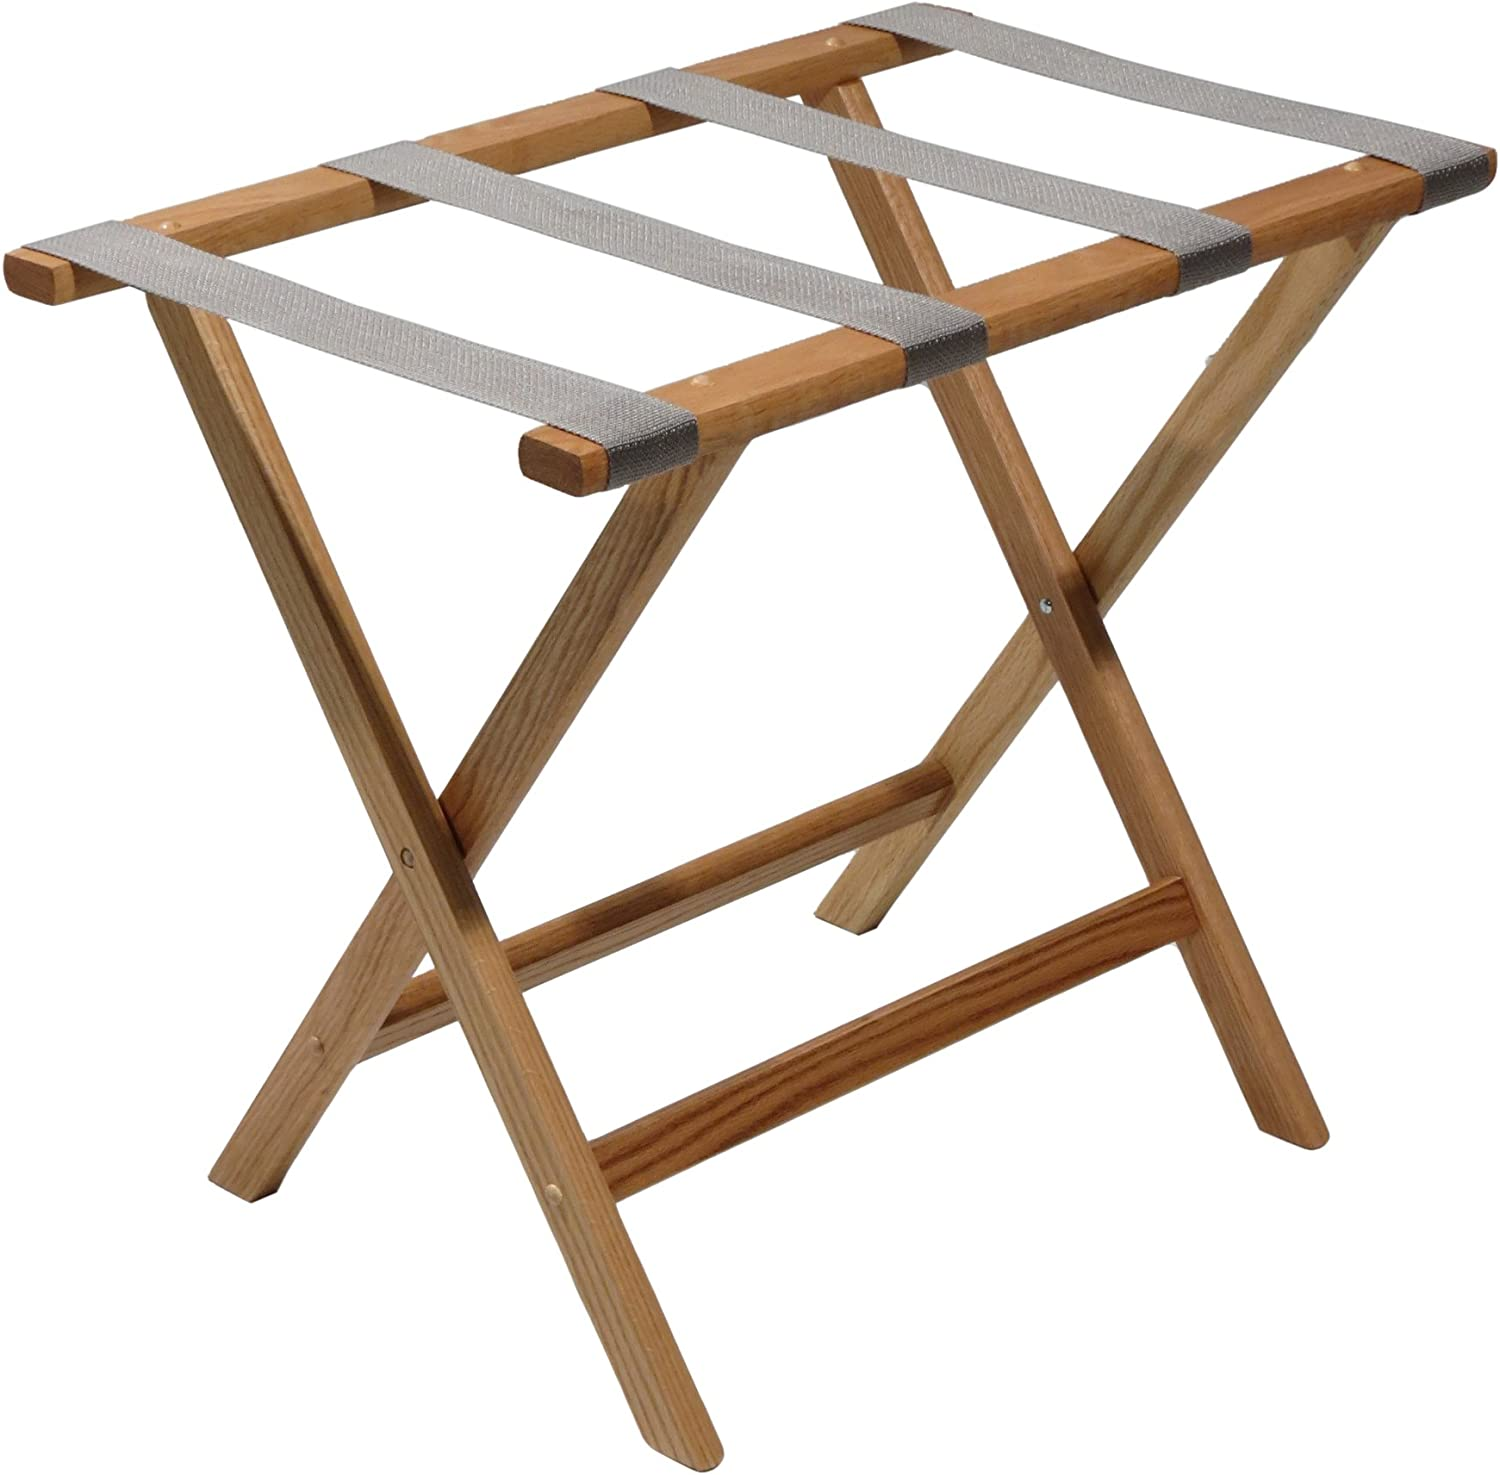 "Wooden Mallet Deluxe Straight Leg Luggage Rack,Grey Straps, 20"" H x 23.75"" W x 15.5"" D, Light Oak"